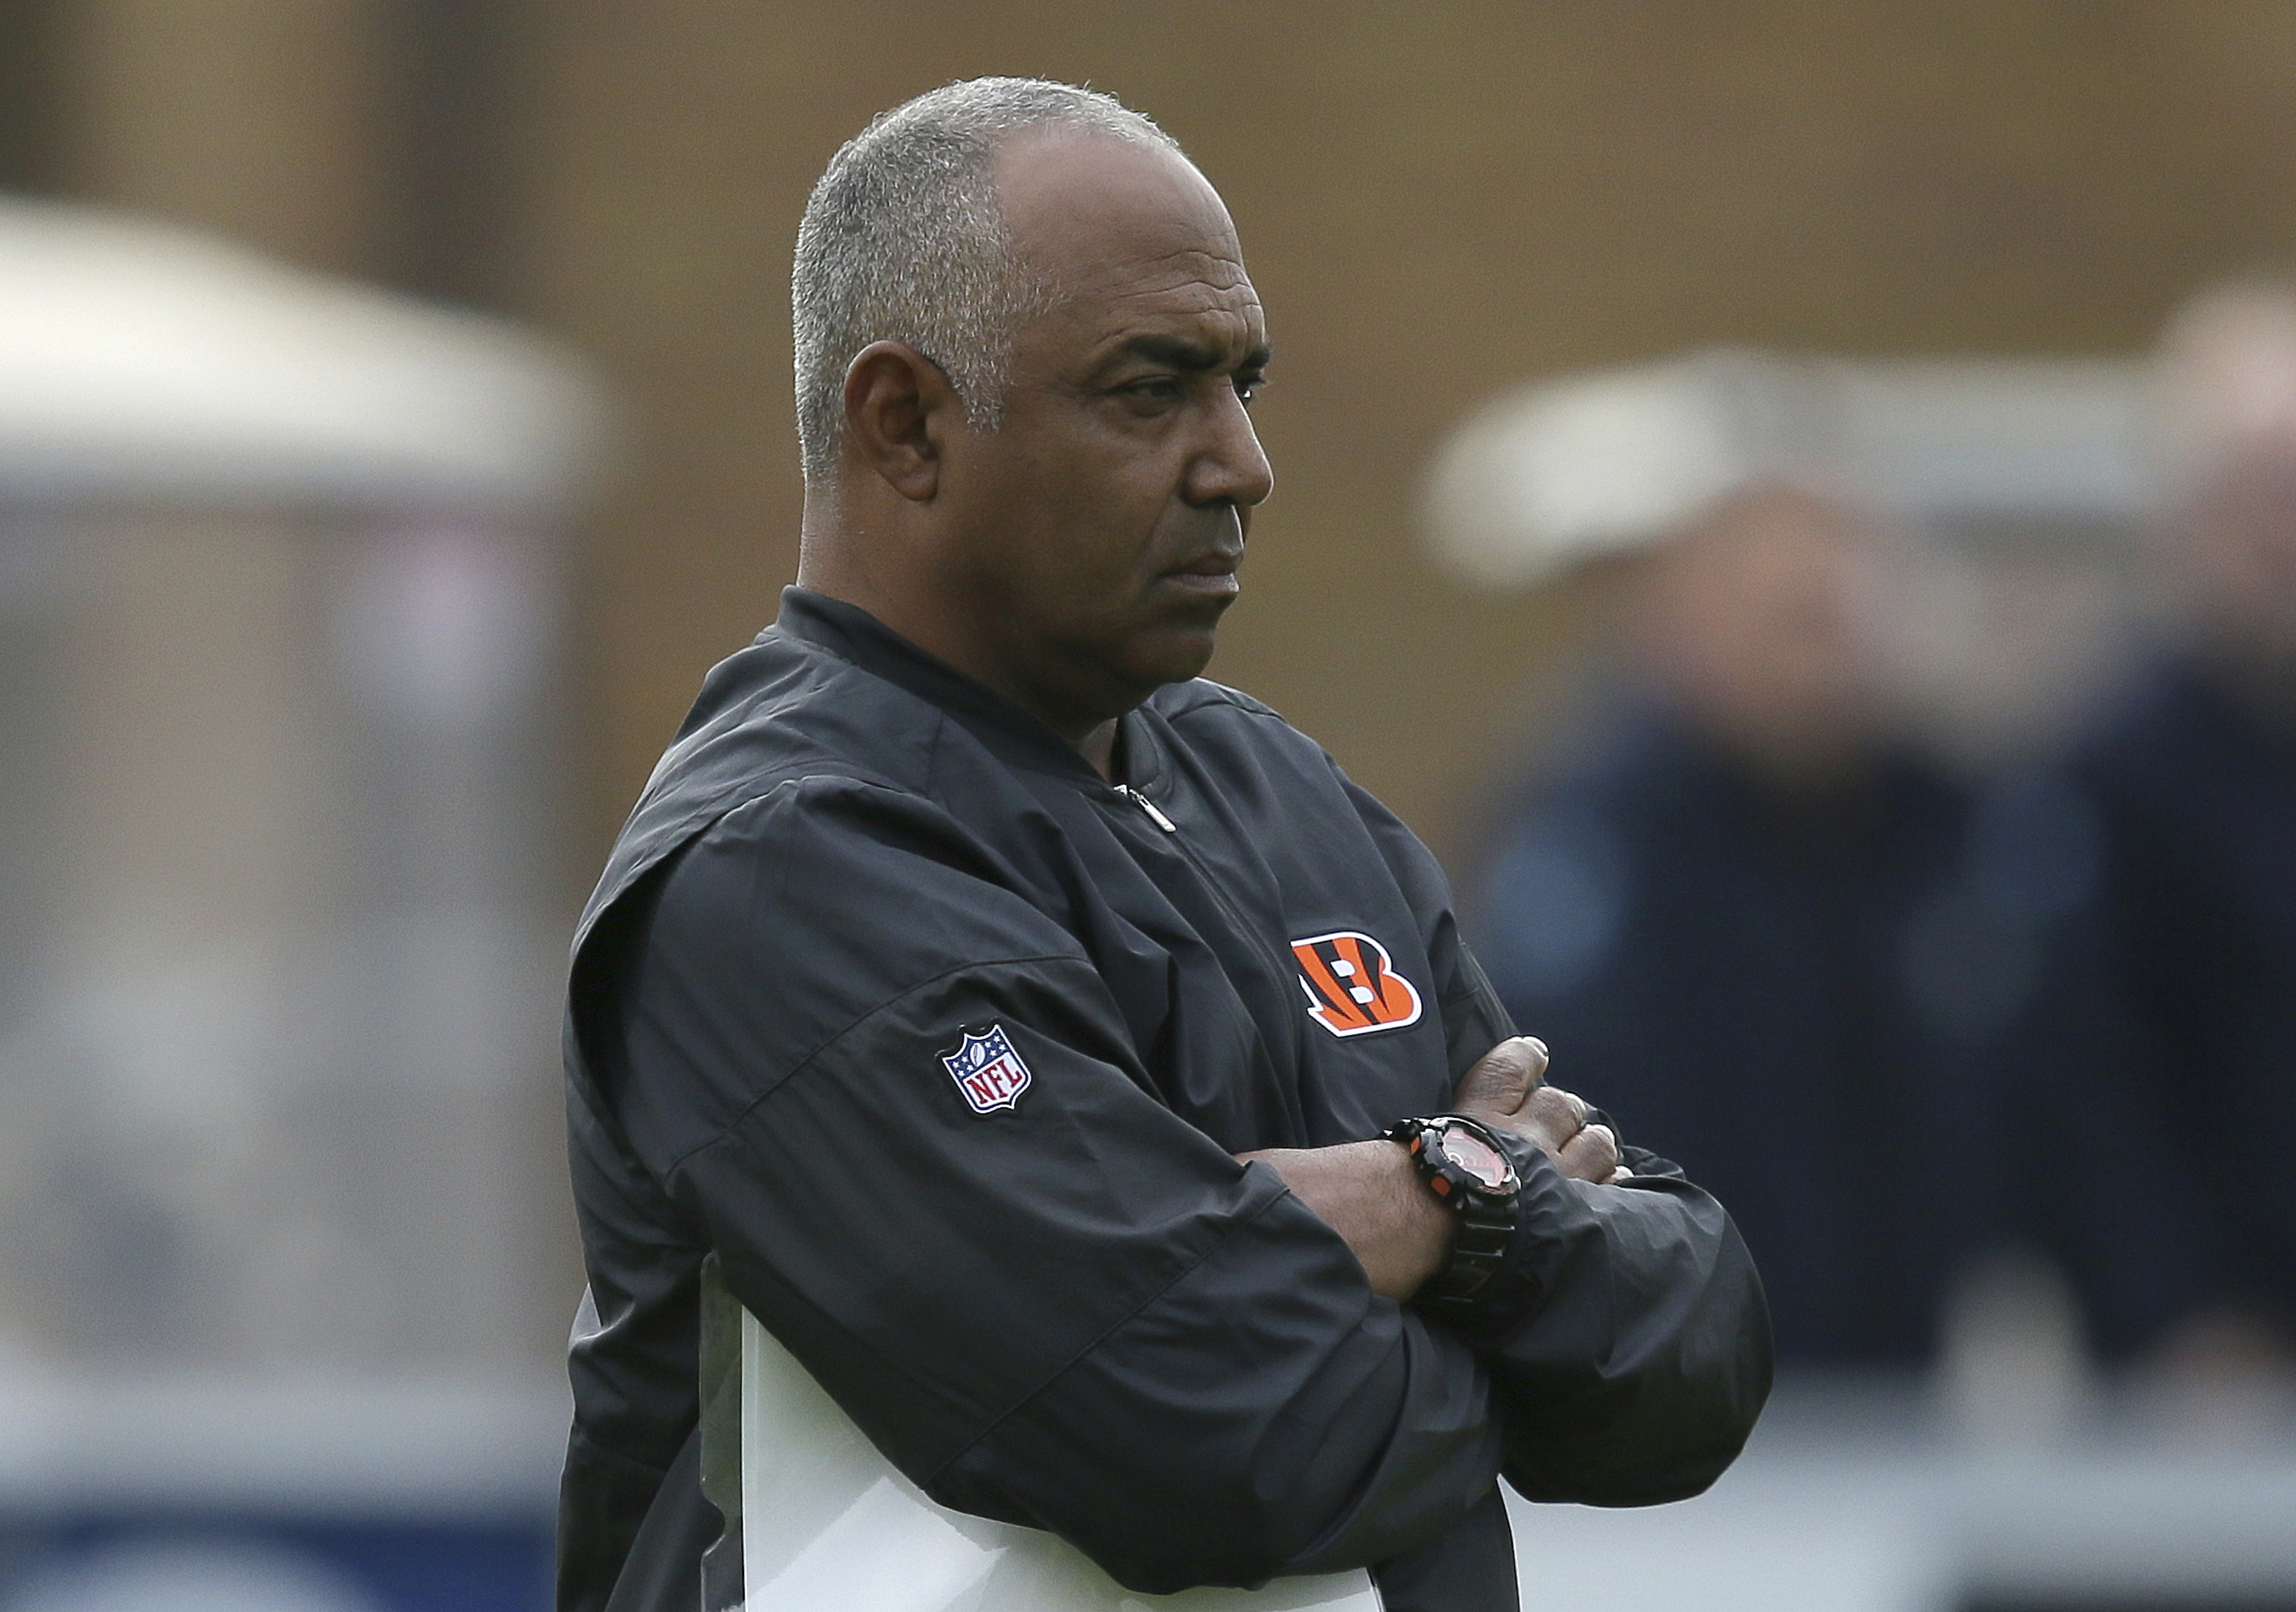 Cincinnati Bengals head coach Marvin Lewis looks across the field during a practice session at Allianz Park in London, England, Friday Oct. 28, 2016. The Washington Redskins are due to play the Cincinnati Bengals at Wembley Stadium in London on Sunday in